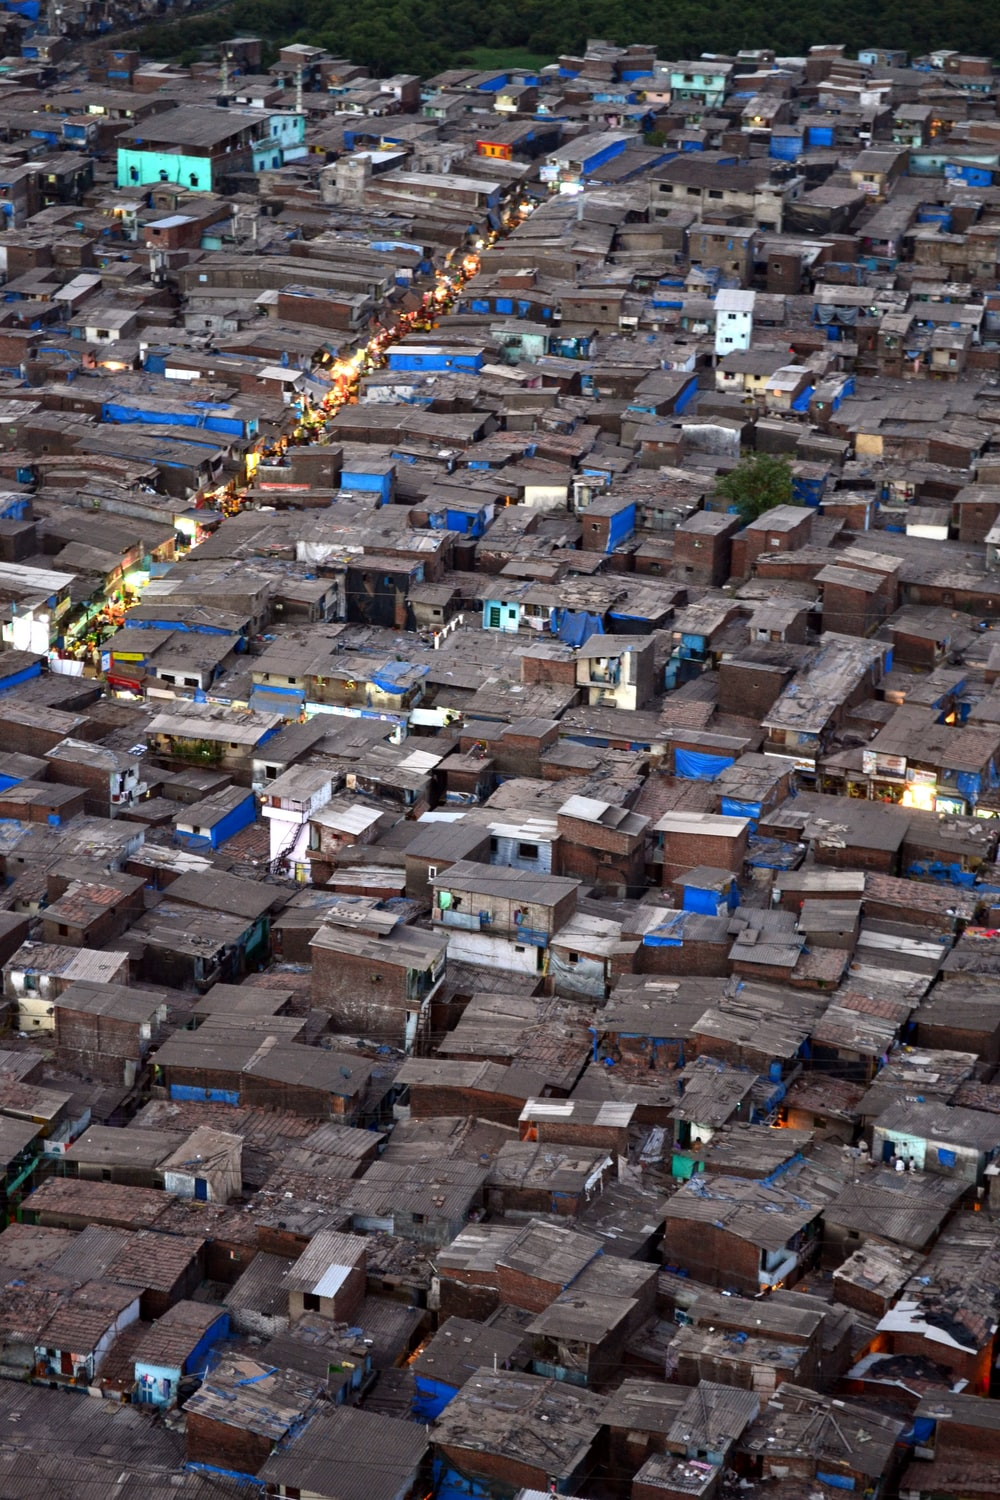 aerial view of houses during daytime